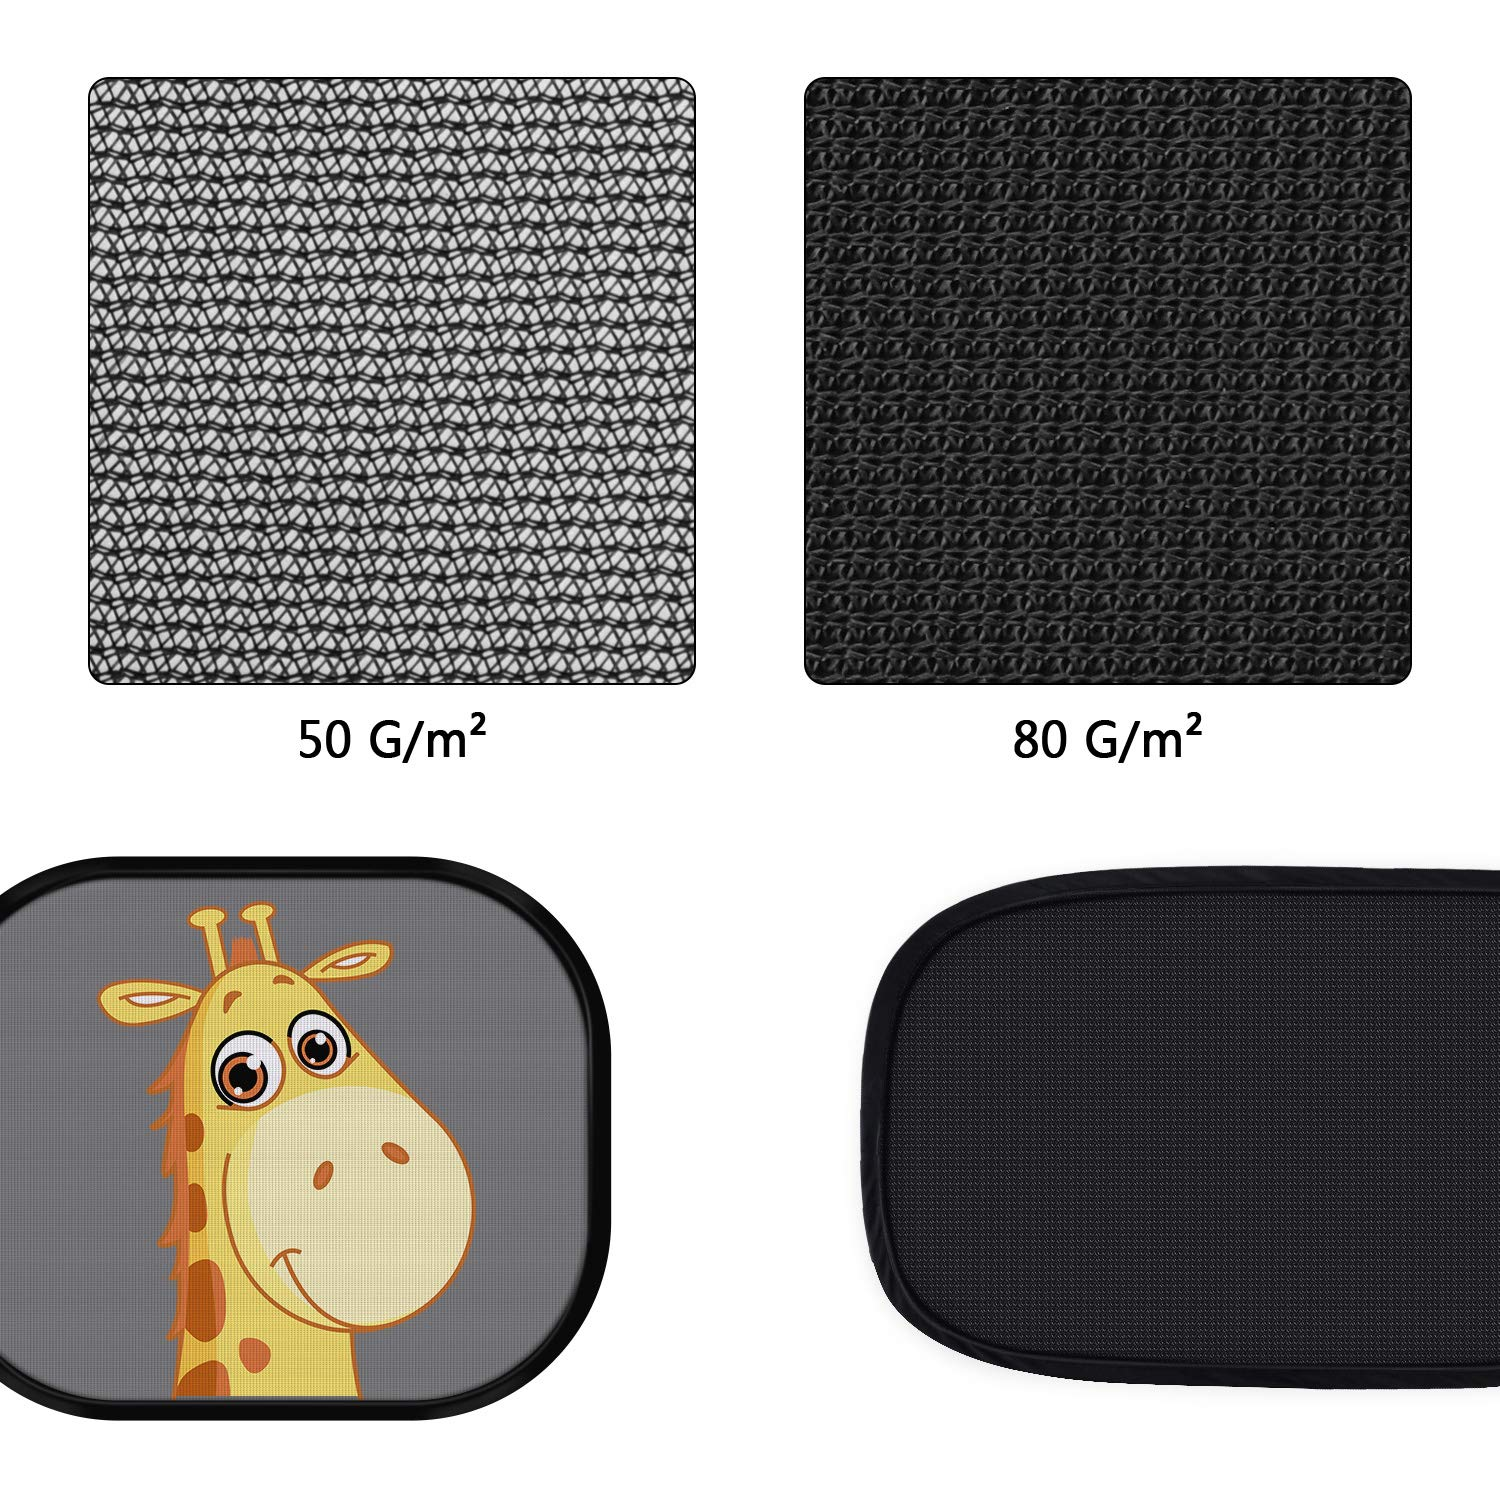 4 Pack Car Side Rear Window Sun Shade- Protect Kids from Sun Glare and Sunburning-2 Semi-Transparent Sunshades /& 2 Transparent Giraffe Cartoon Shades-Travel E-Book PEYOU Car Window Shades for Baby,